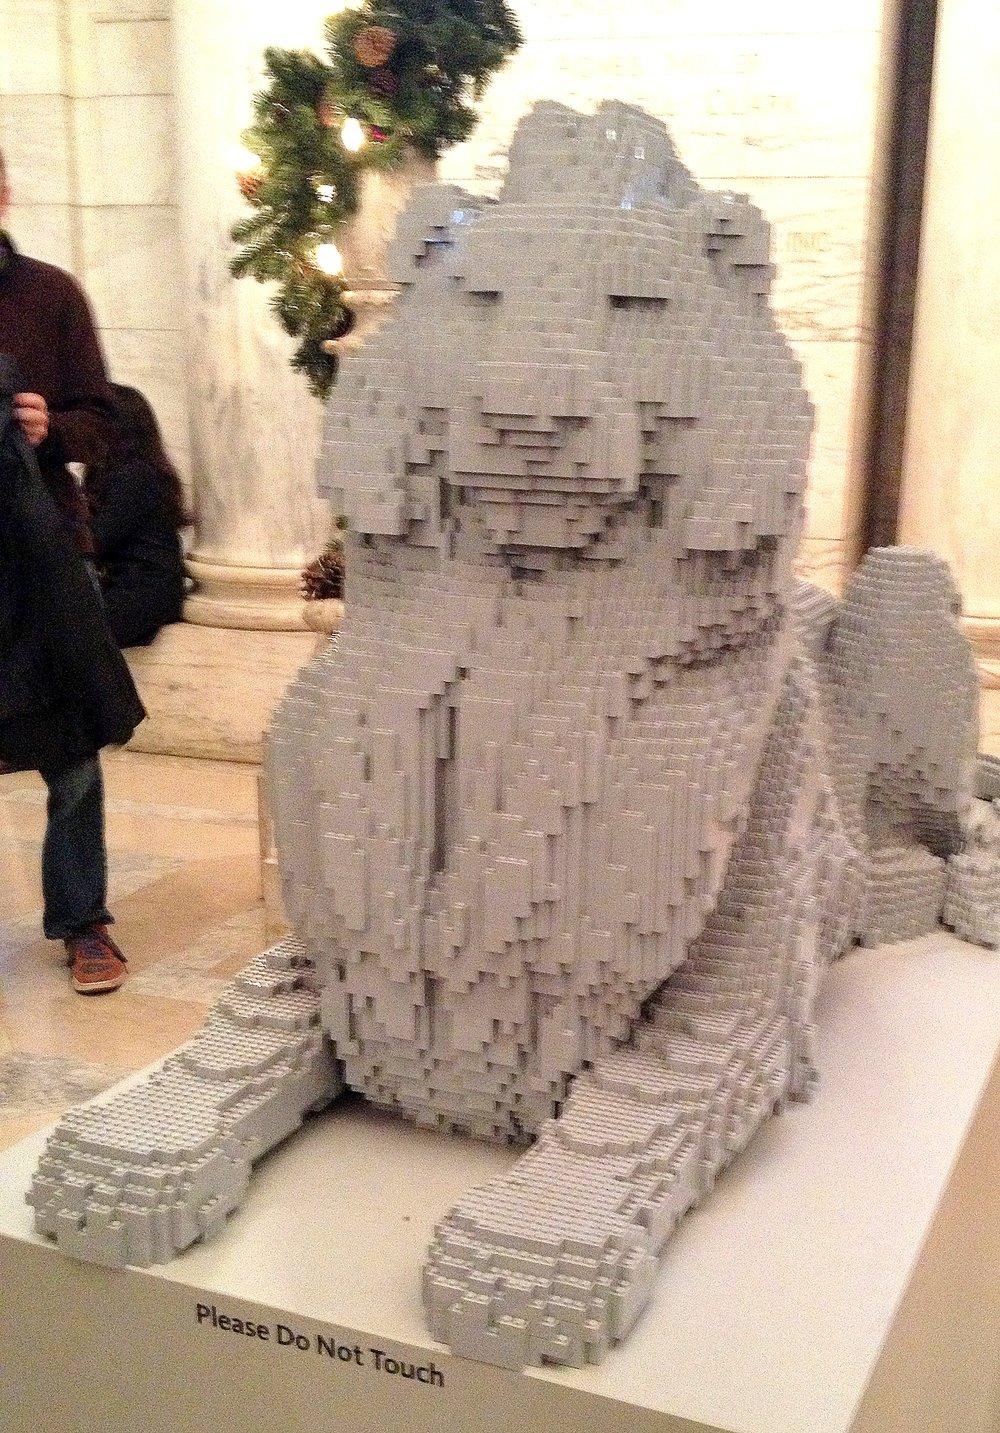 The NYPL Lion in Lego